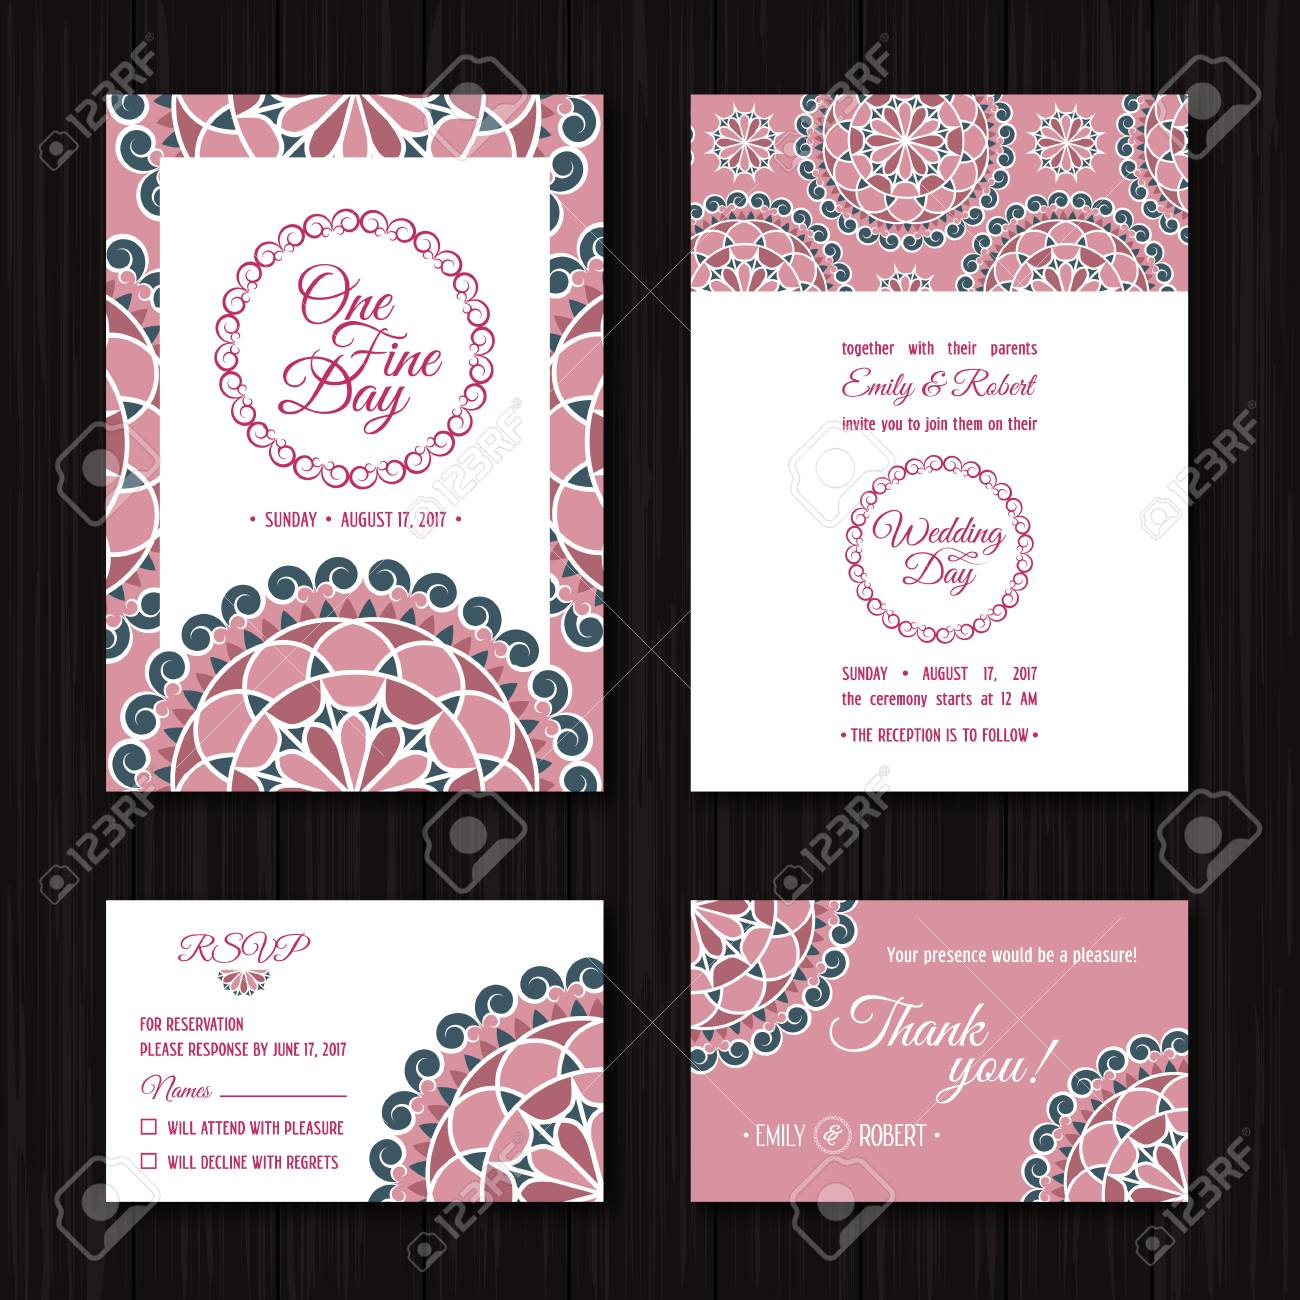 Wedding Invitations Sets Save The Date And RSVP Cards Elegant